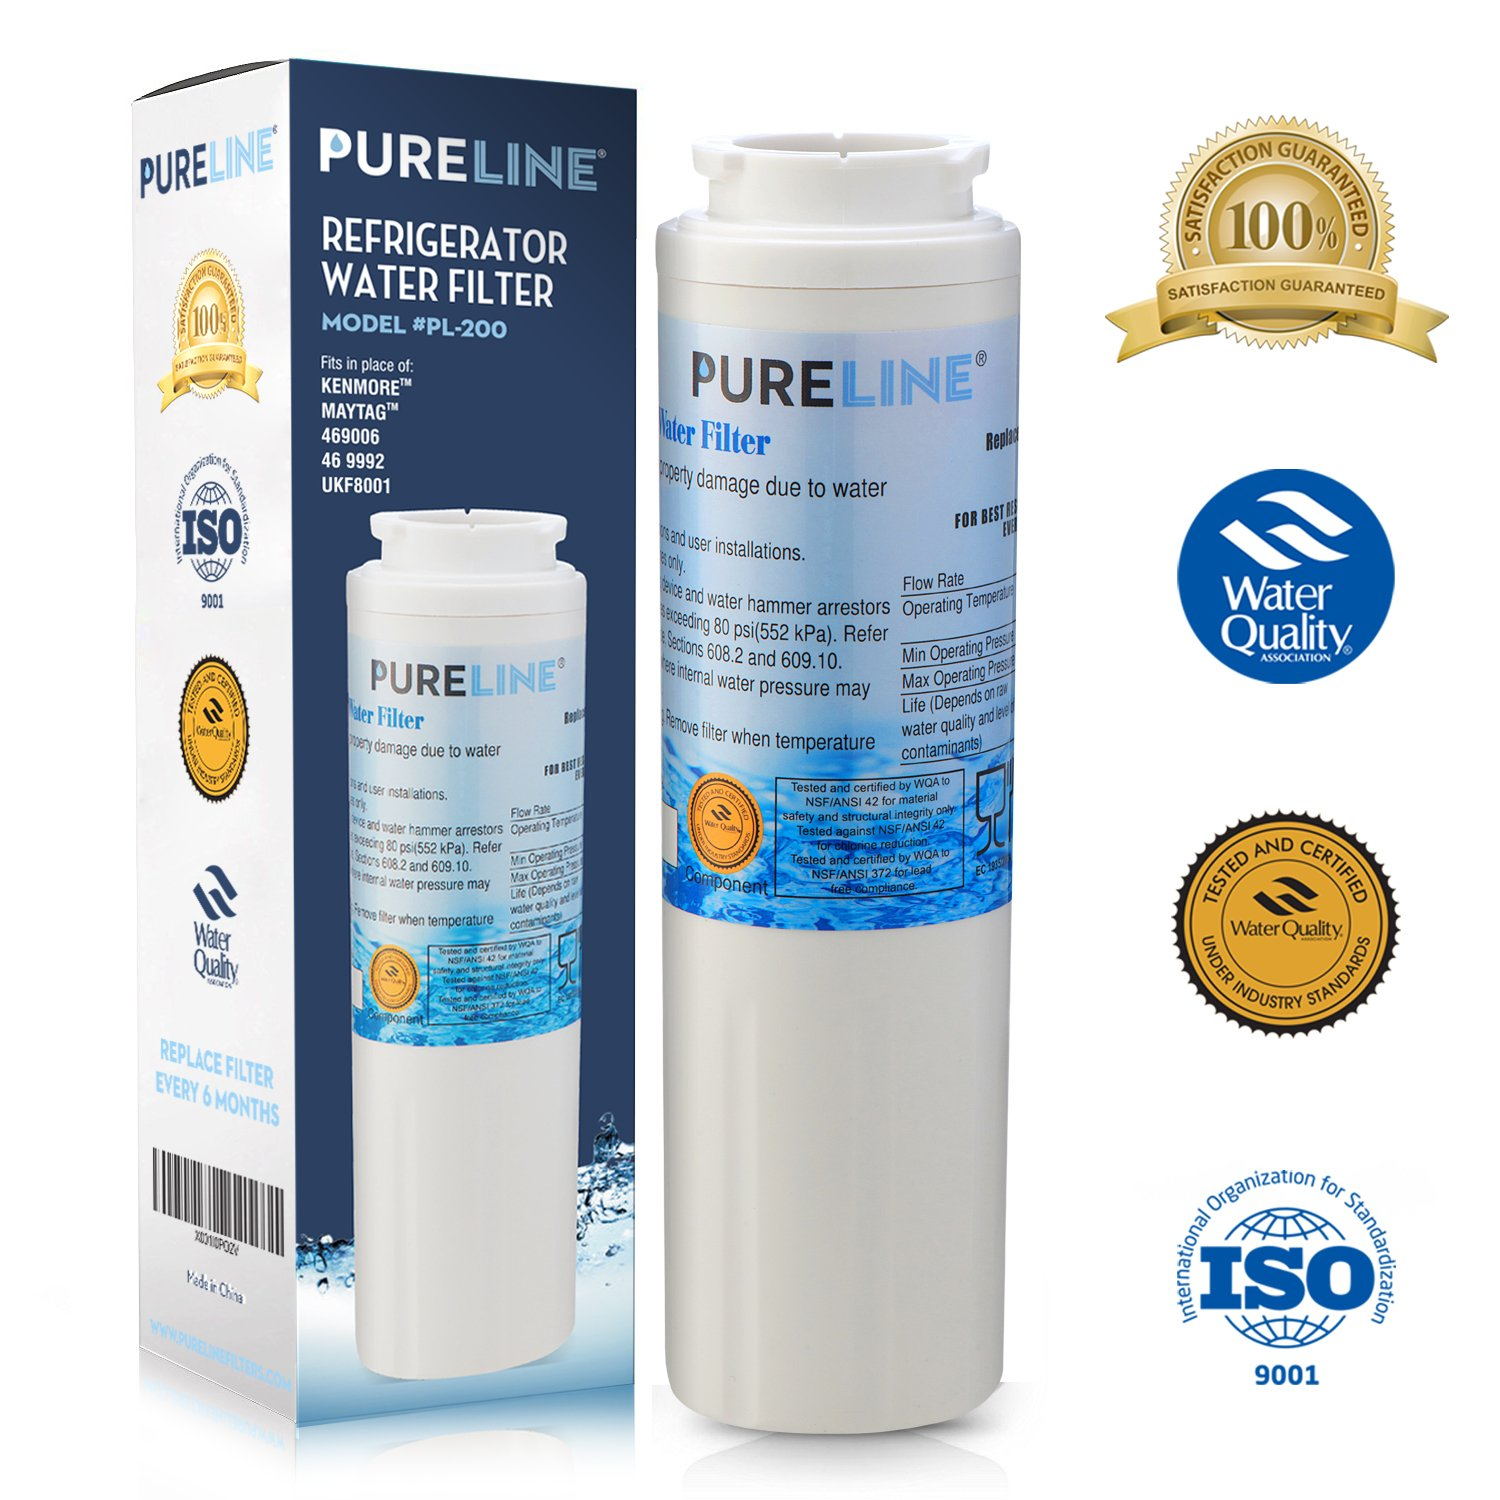 Details about Maytag UKF8001 PUR Fast Flow Water Filter Replacement  UKF8001AXX, EDR4RXD1,